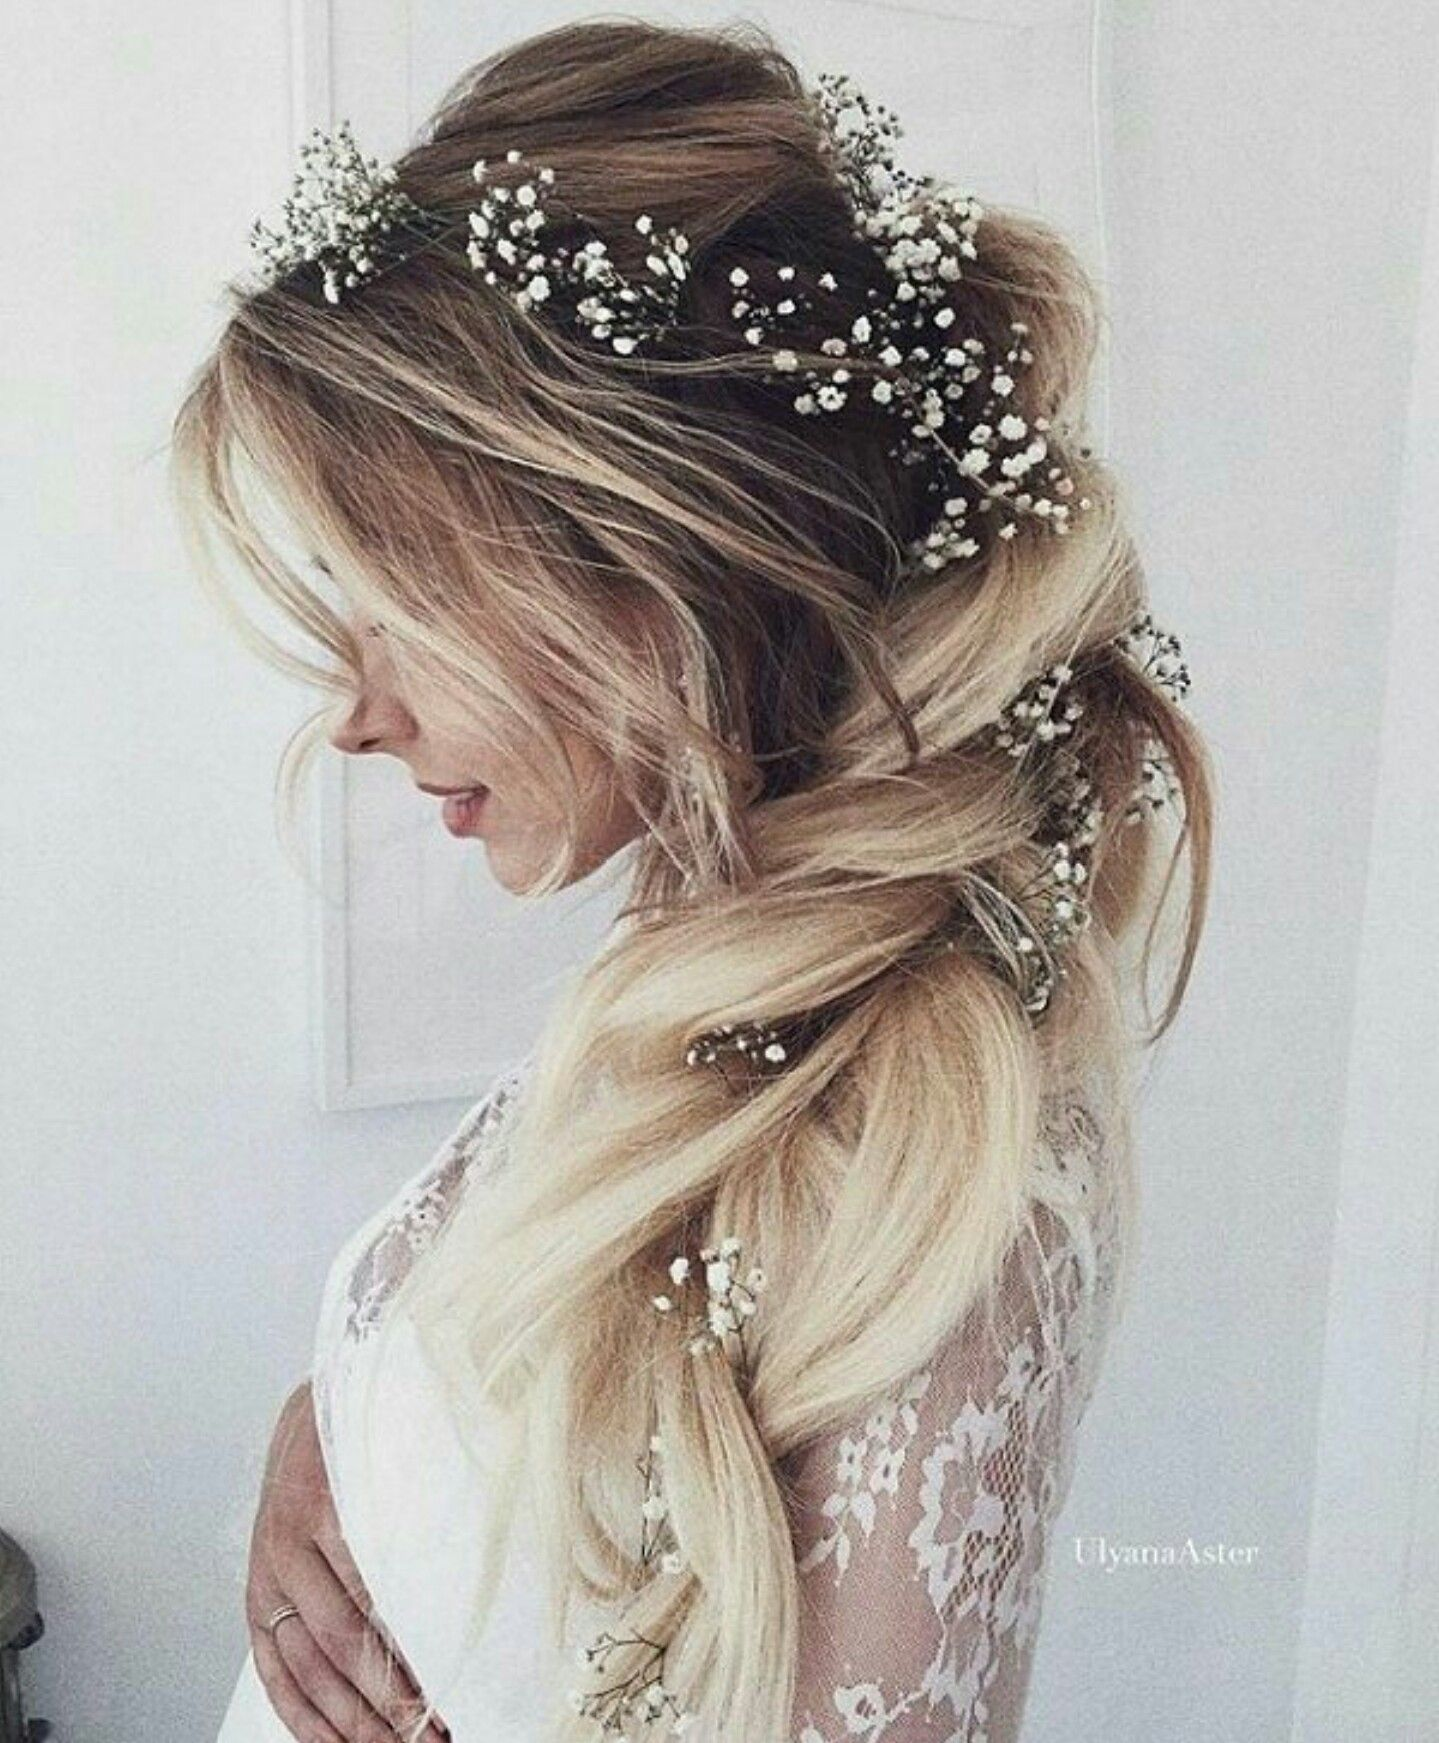 White Wedding Hairstyles: Long Blond Bride Hair With Little White Flowers